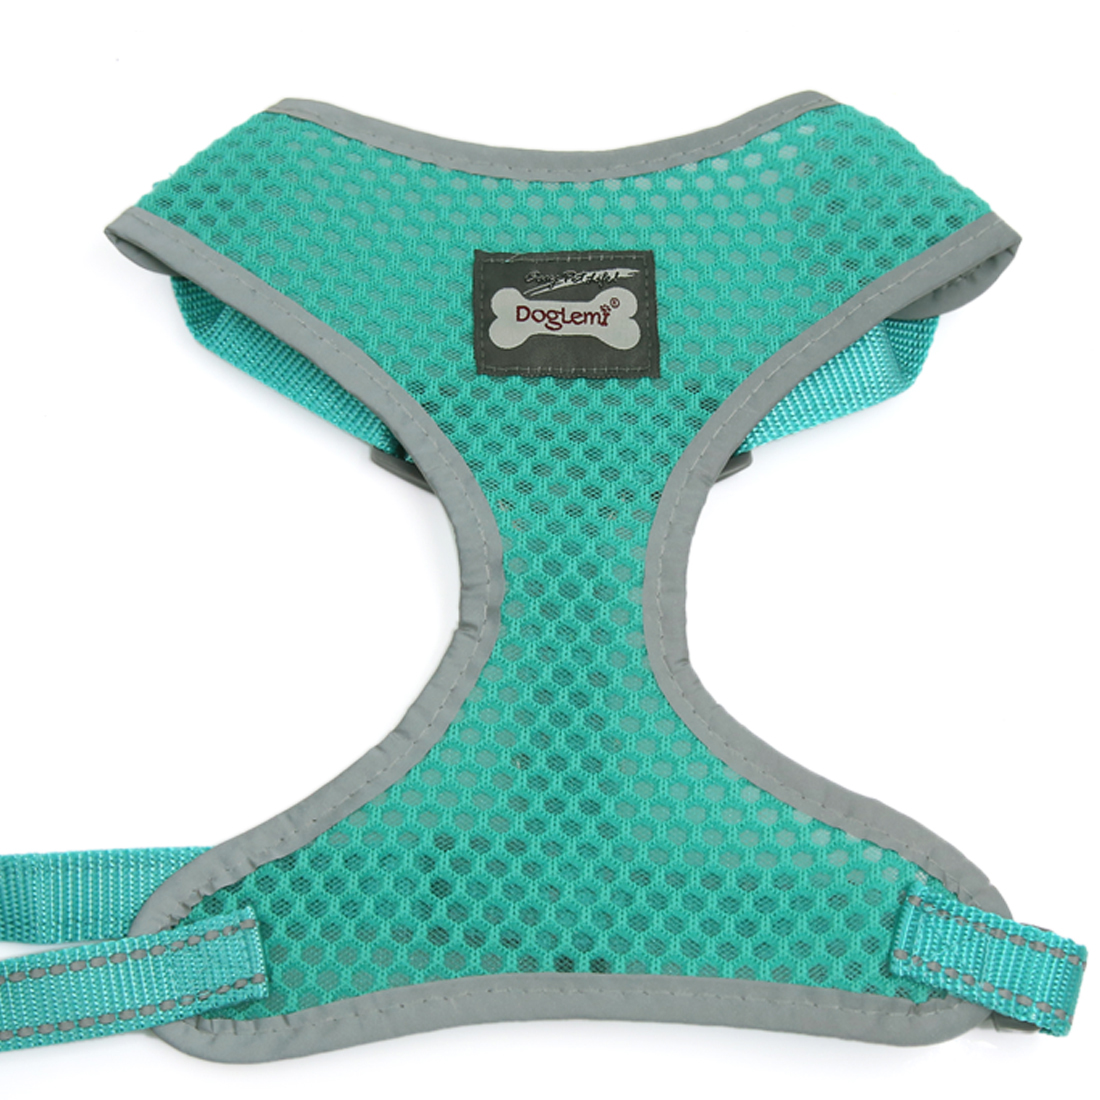 Comfort Control Dog Adjustable Breathable Soft Air Mesh Puppy Harnesses Walk Collar Reflective Vest Green S